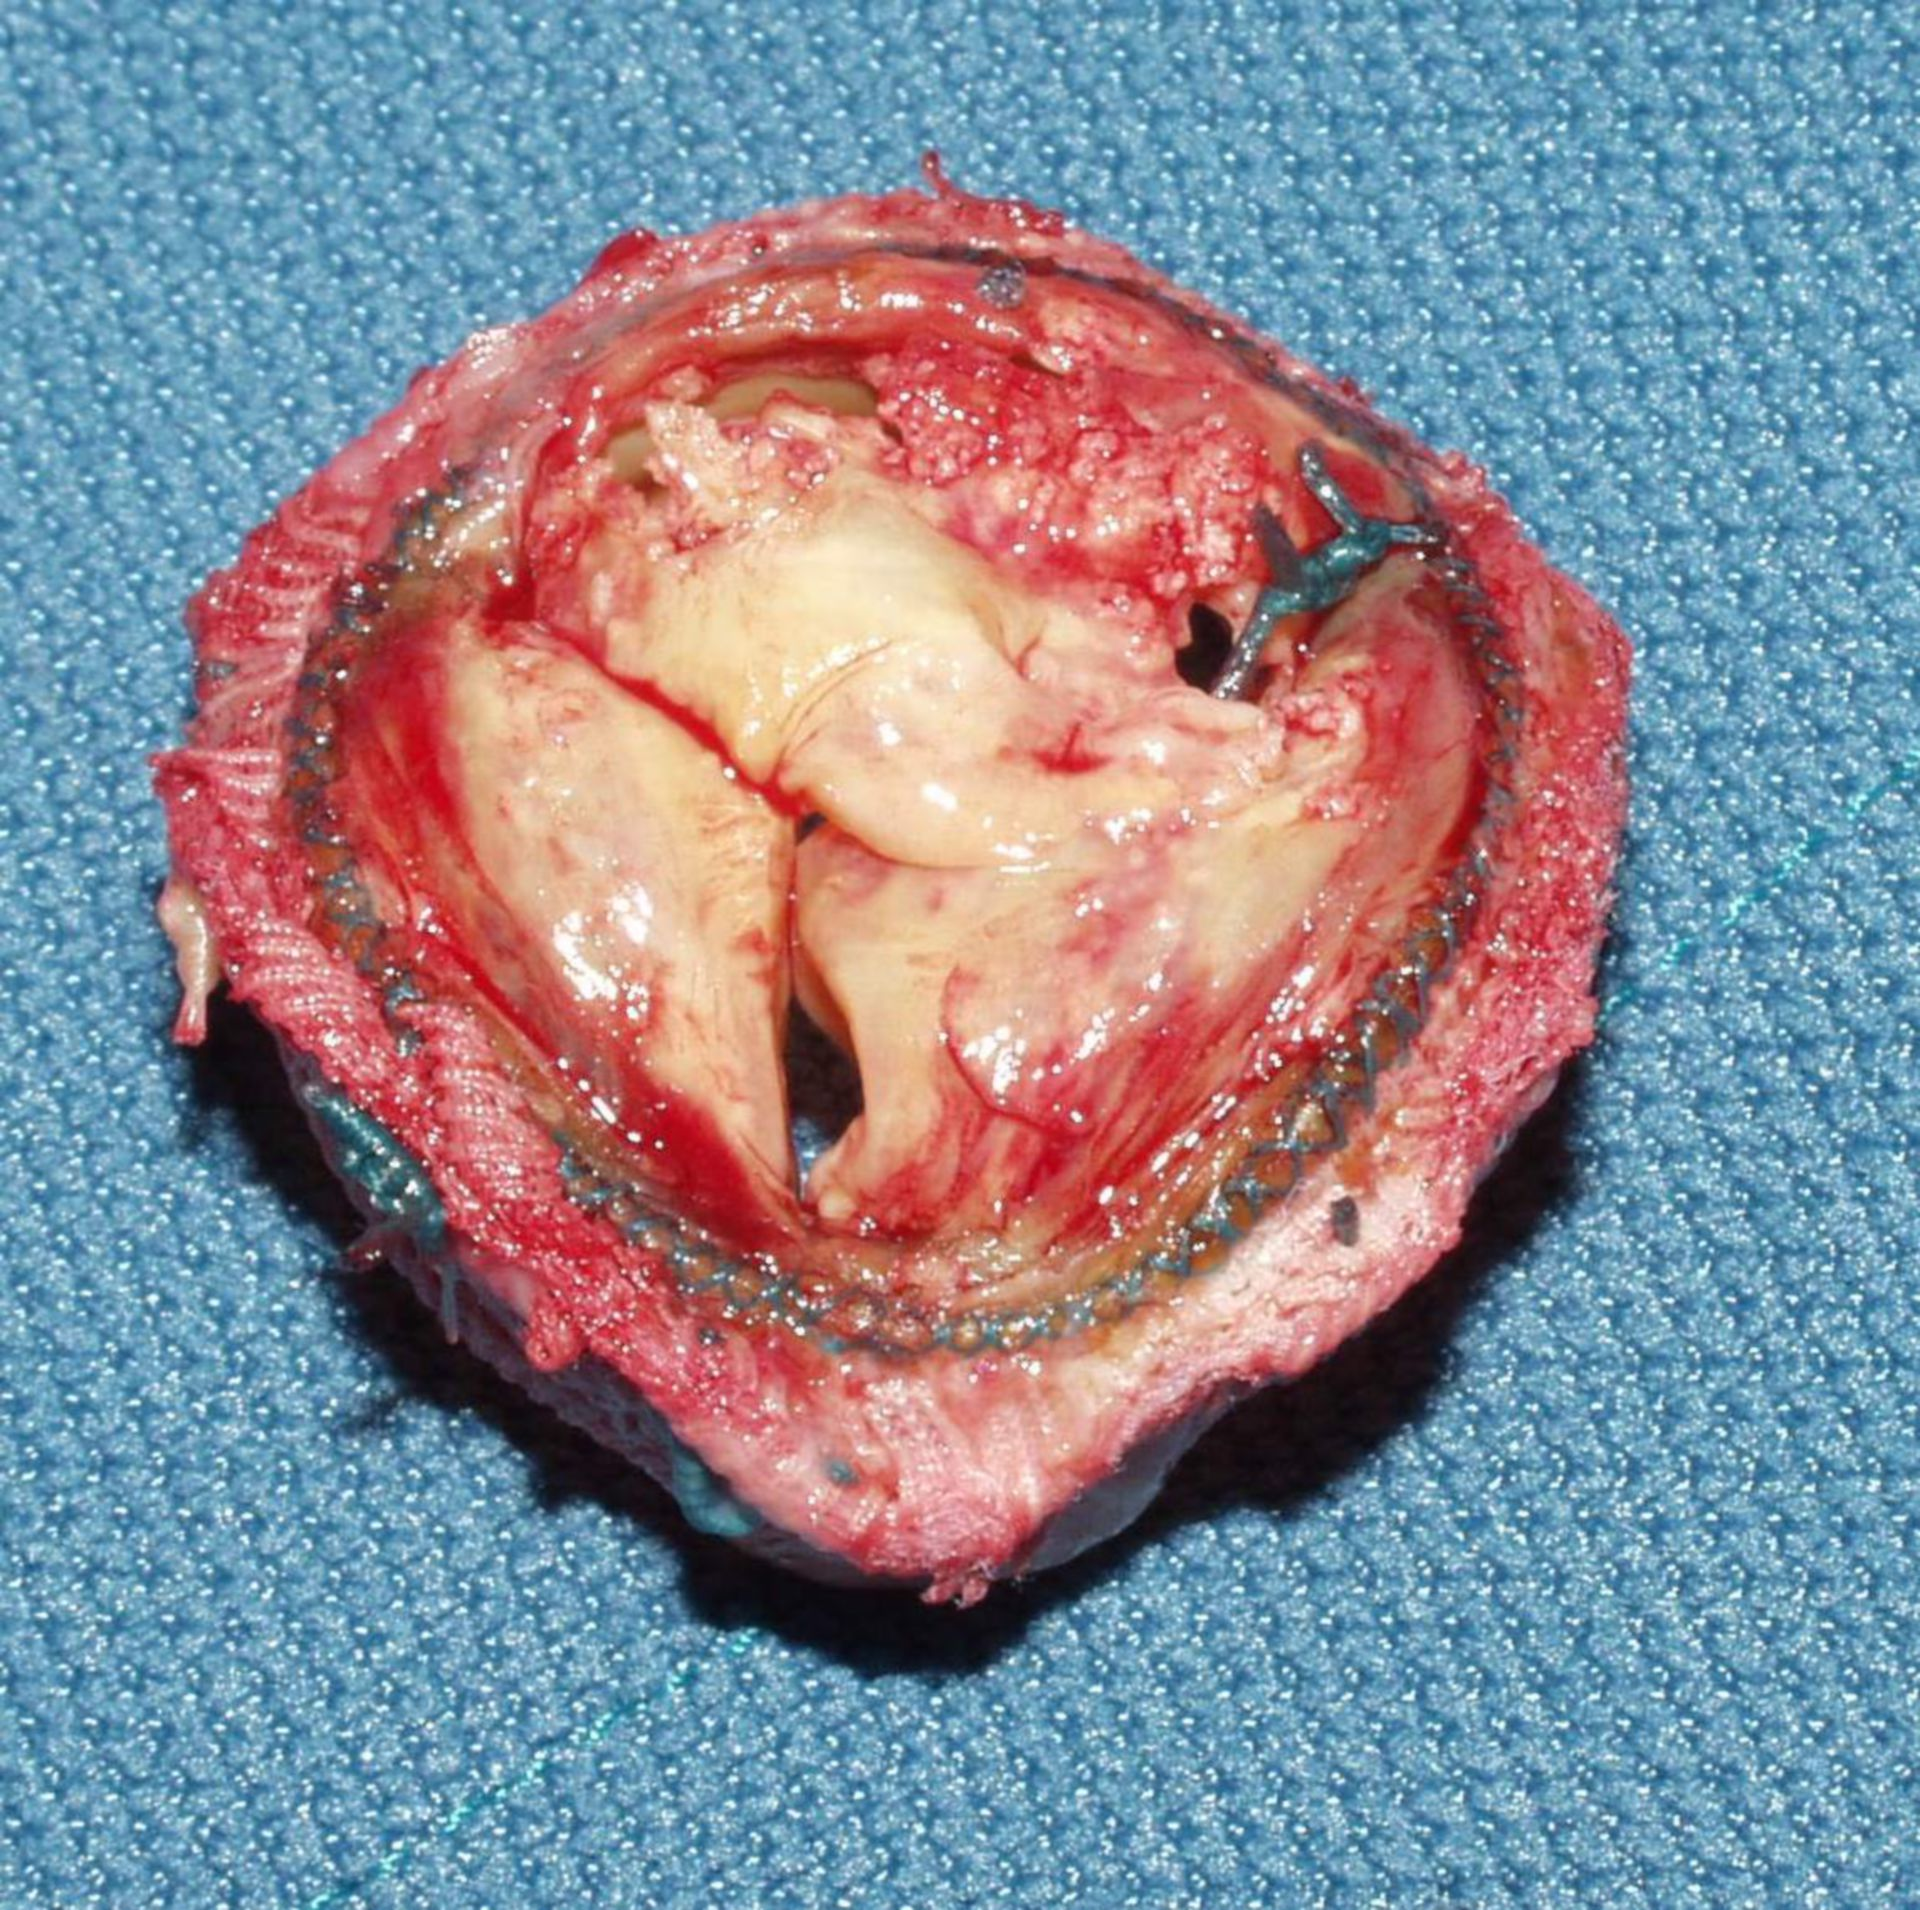 Reconstruction of aortic valve after 'David' (fig. 3a)